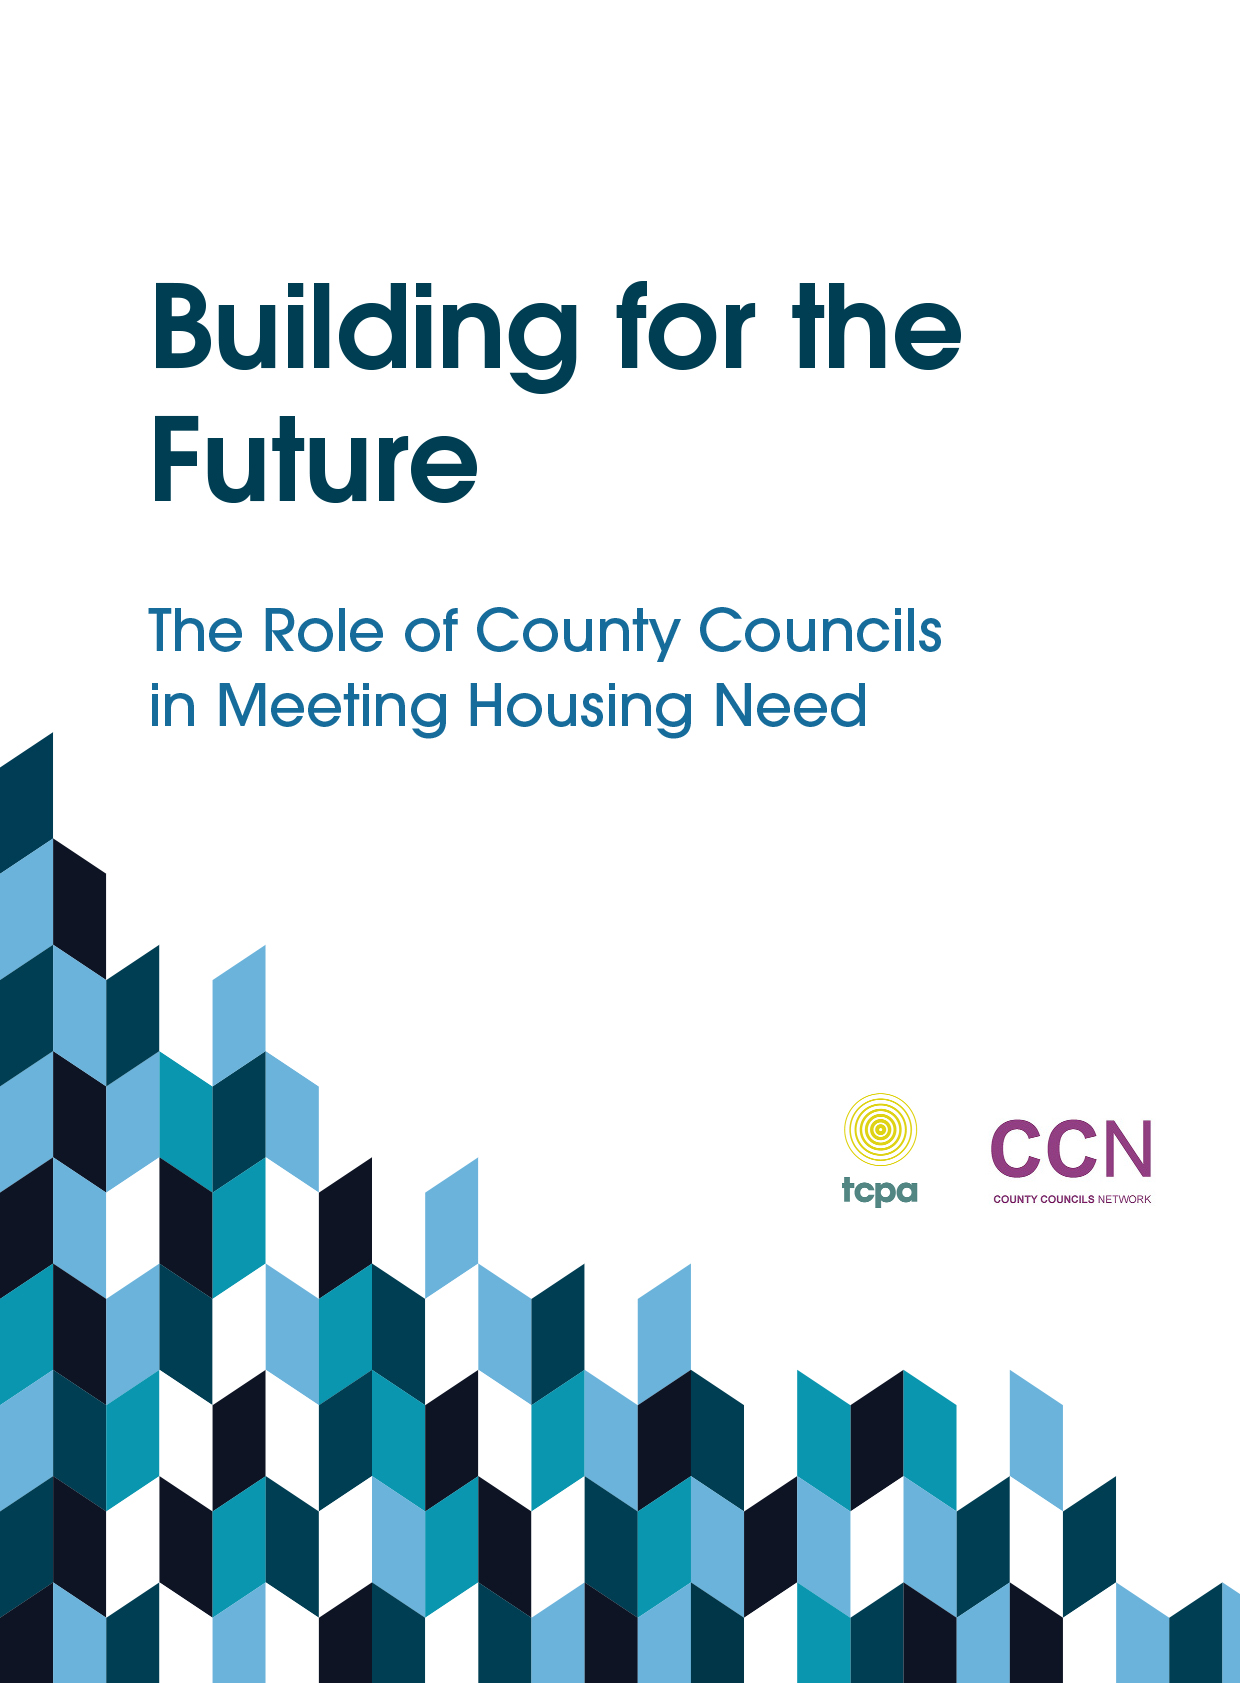 Building for the future: the role of county councils in meeting housing need